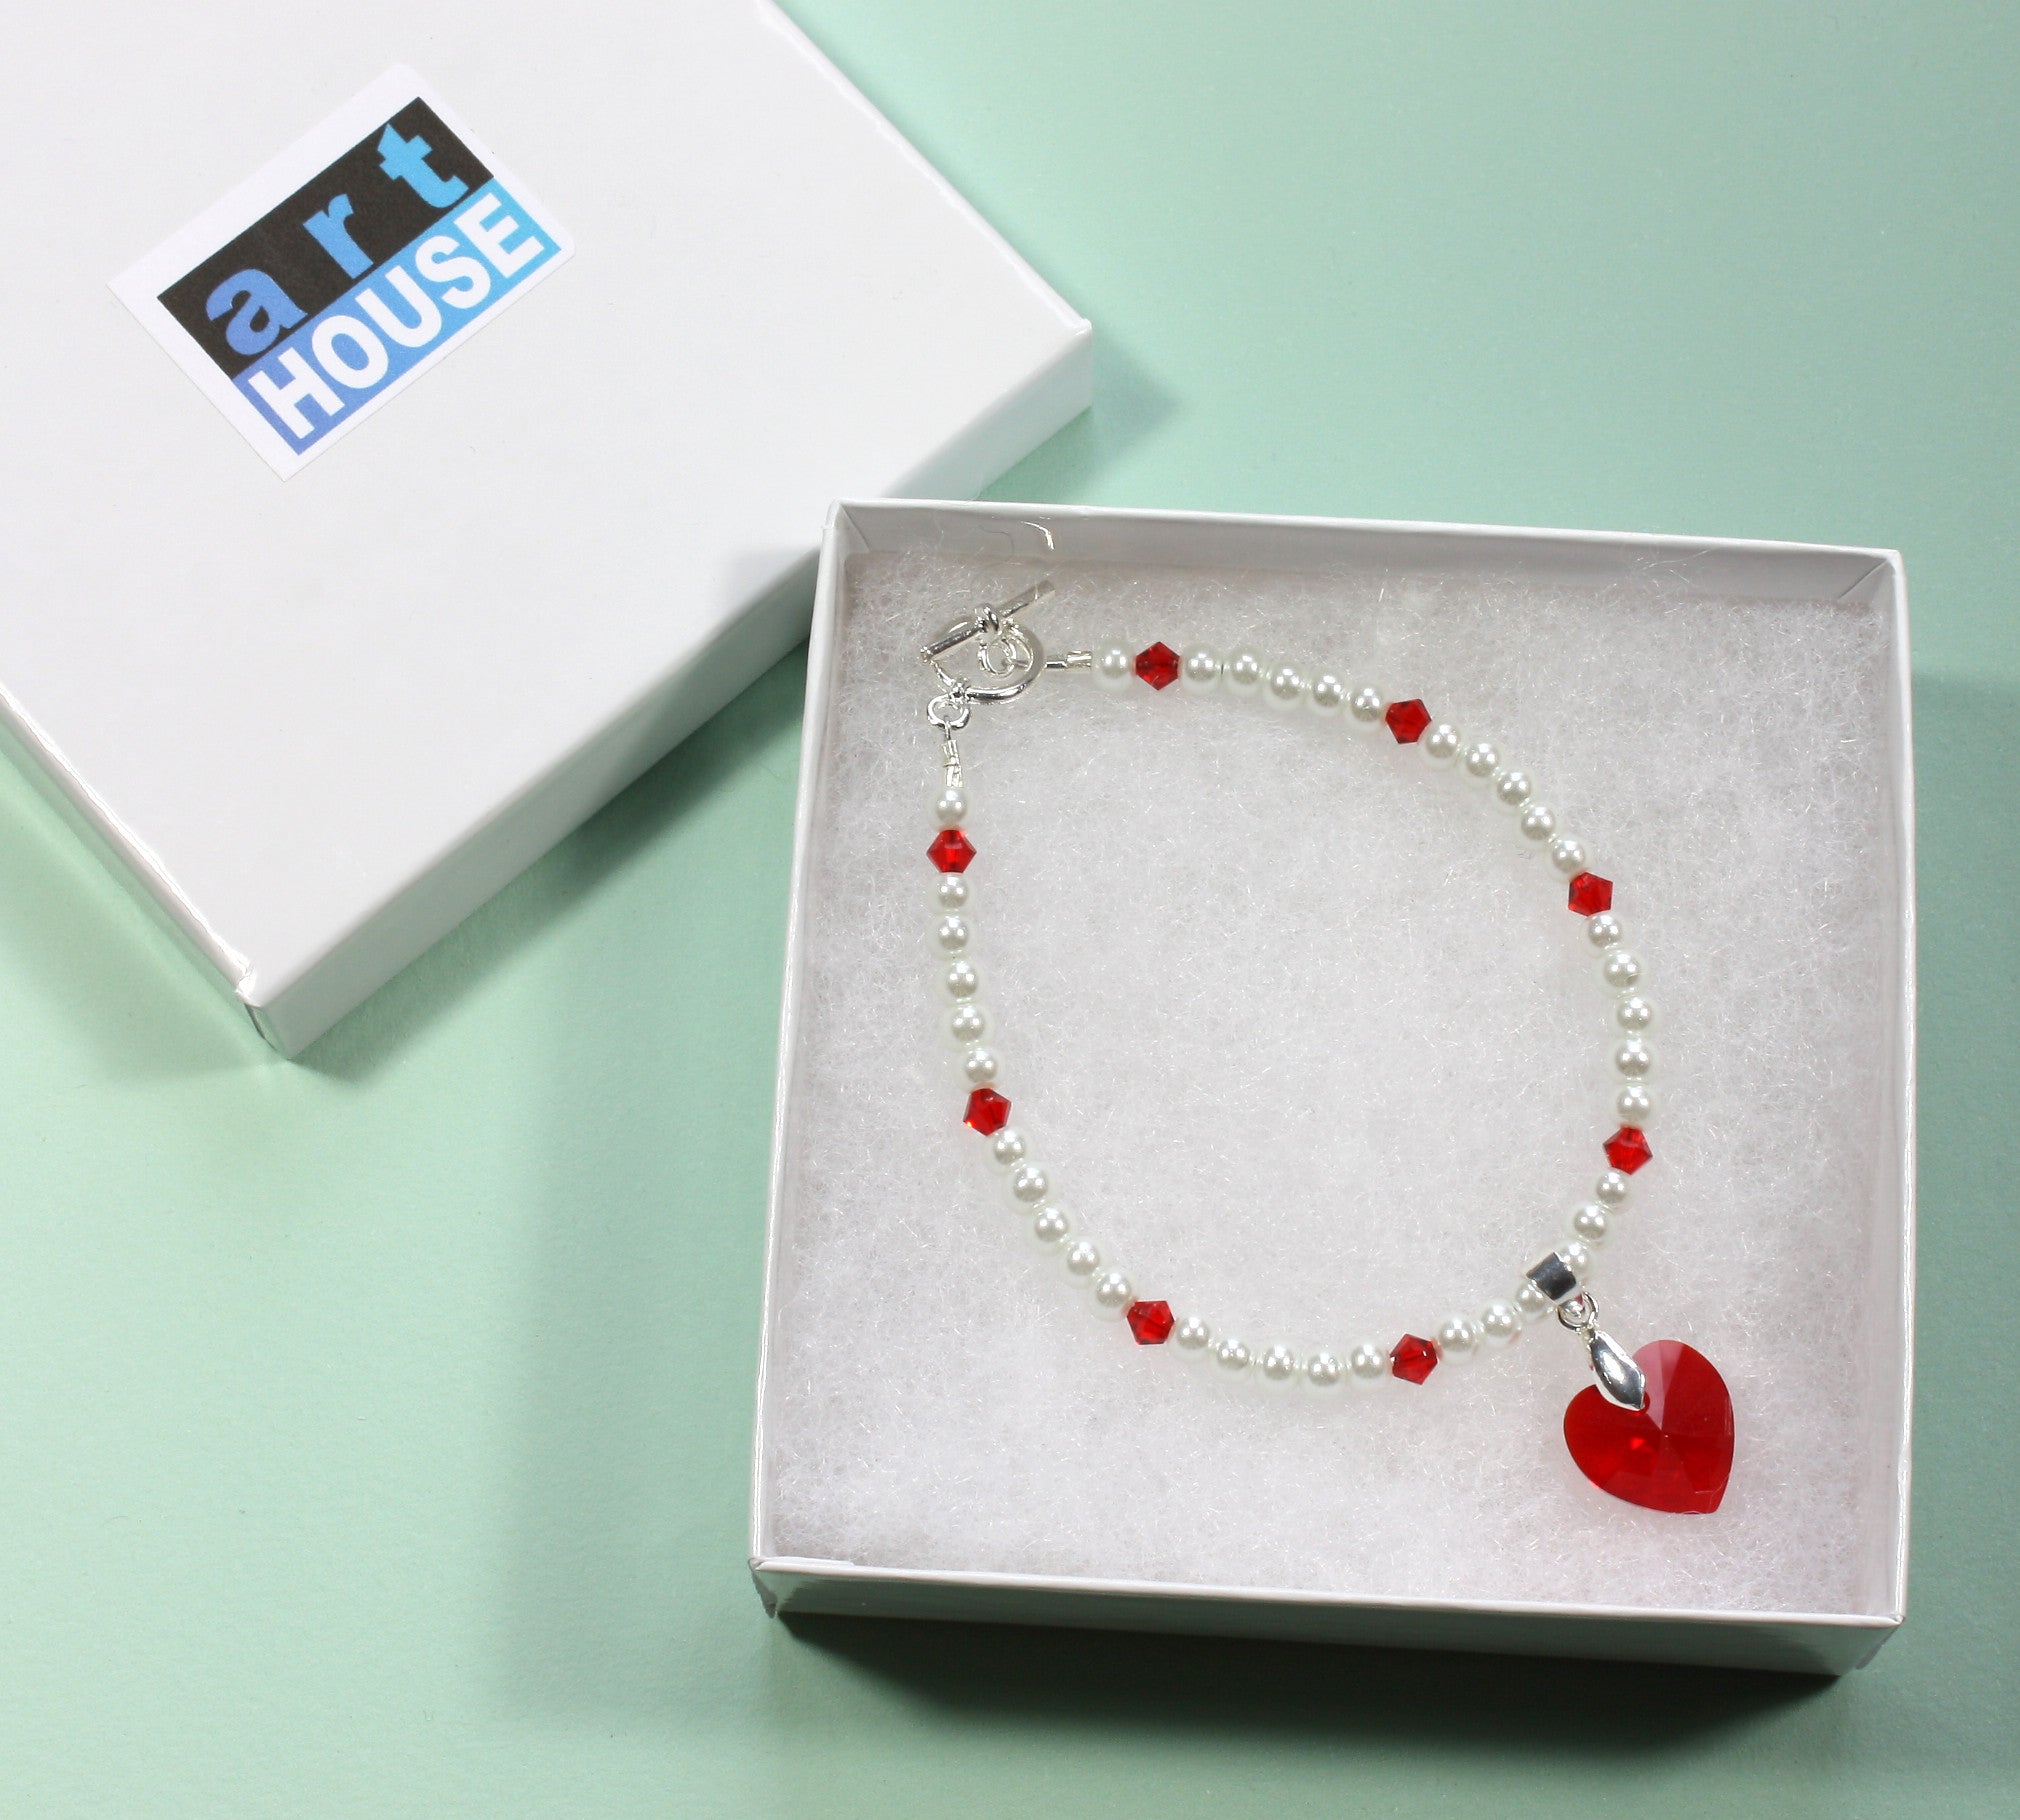 goo bracelet day offers valentine jewelry s special excellent pandora bremer idea